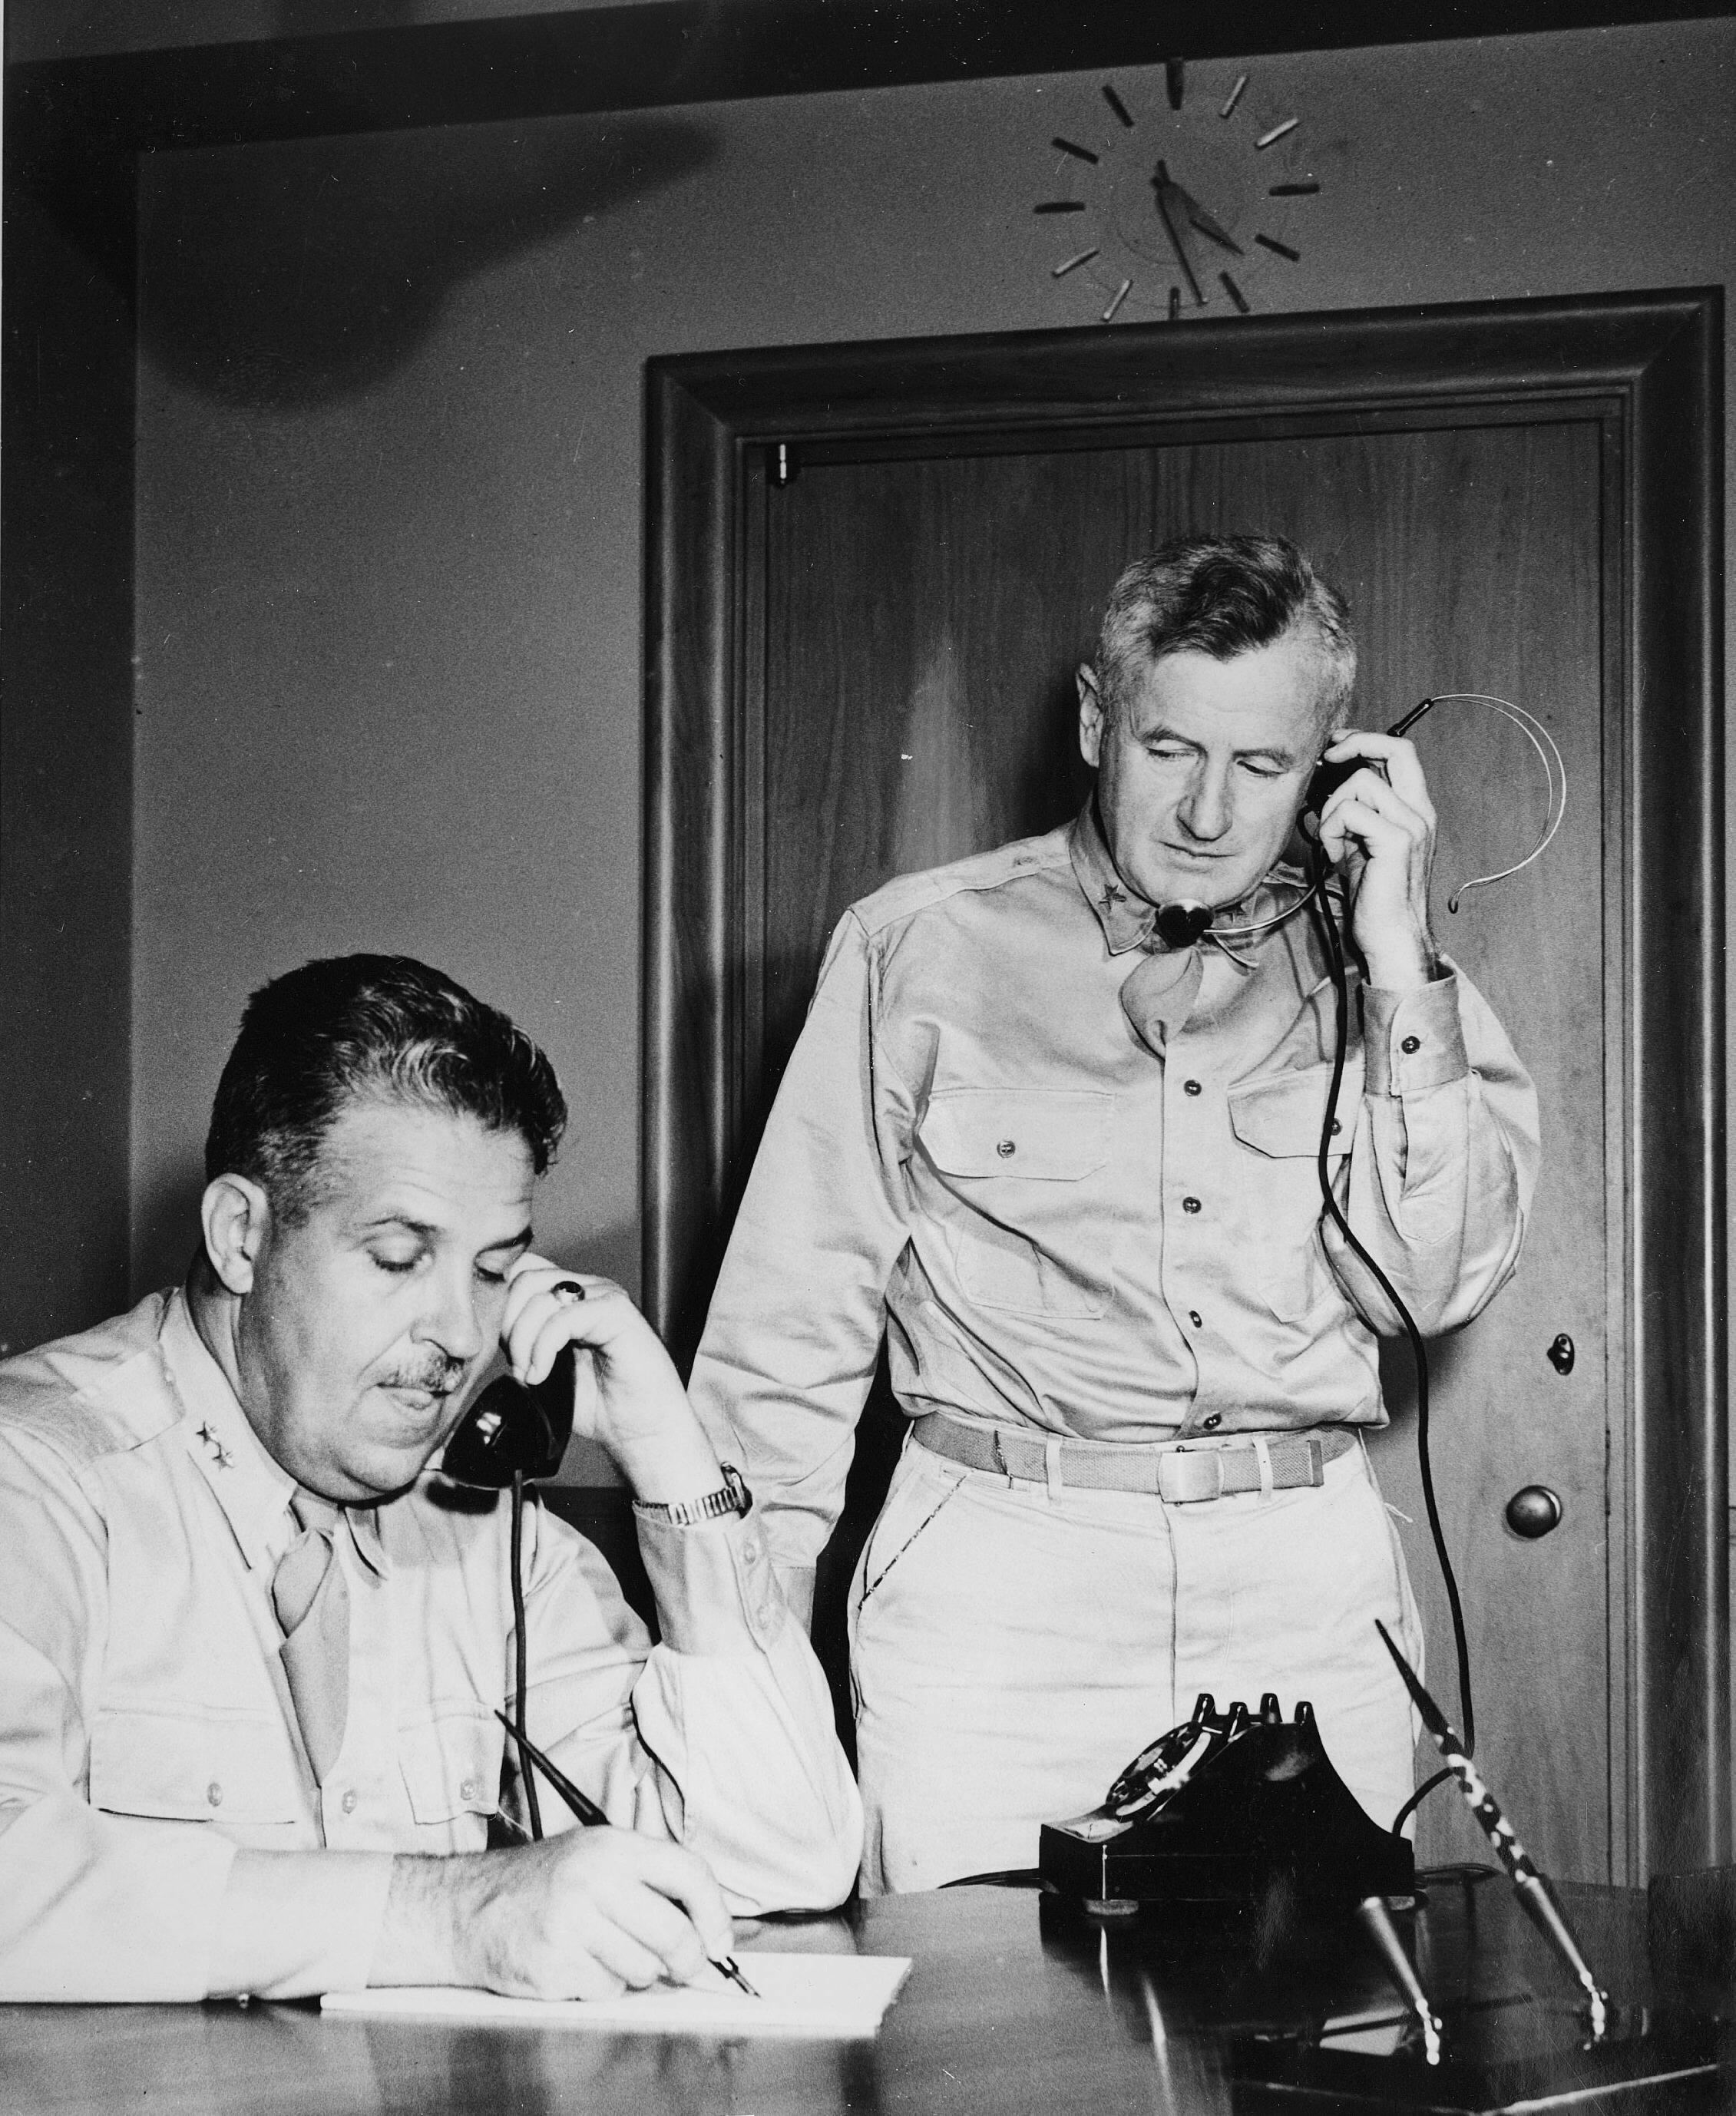 Two men in shirts and a ties. One is sitting at a desk and the other standing. Both are talking on telephones.